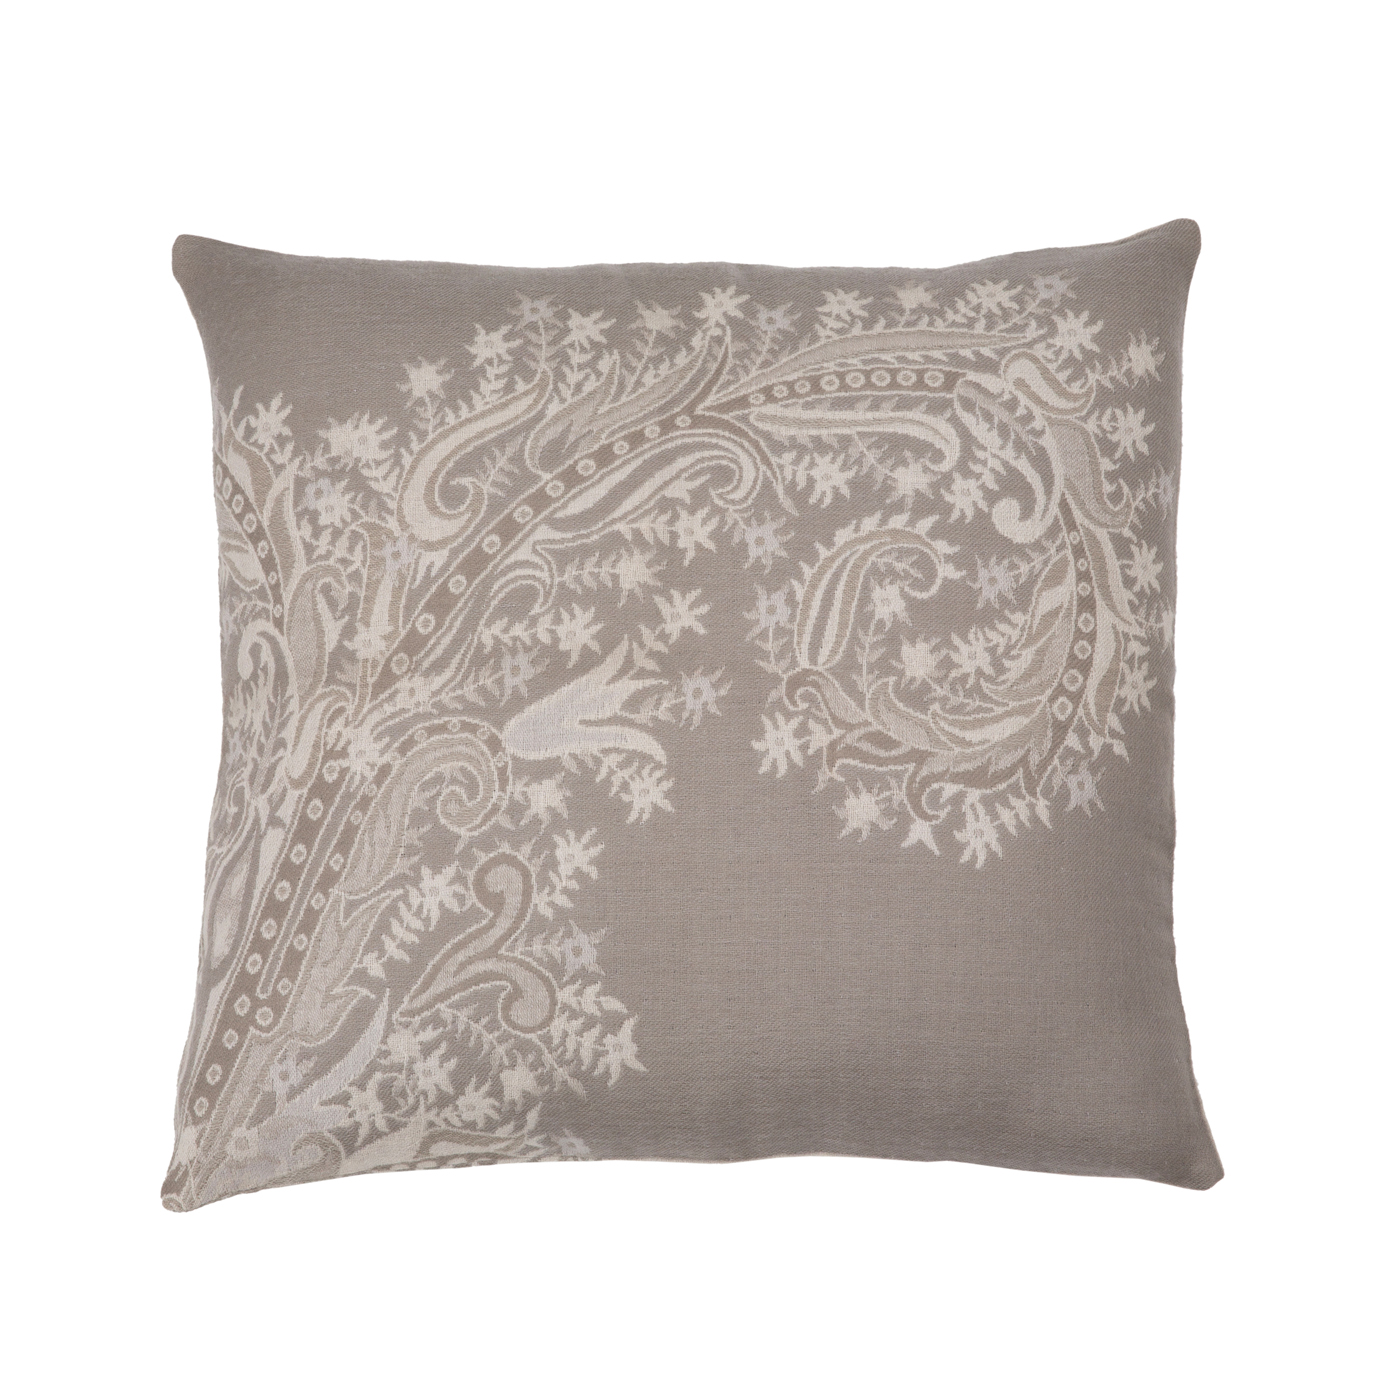 Global Village Cushion Cover Online